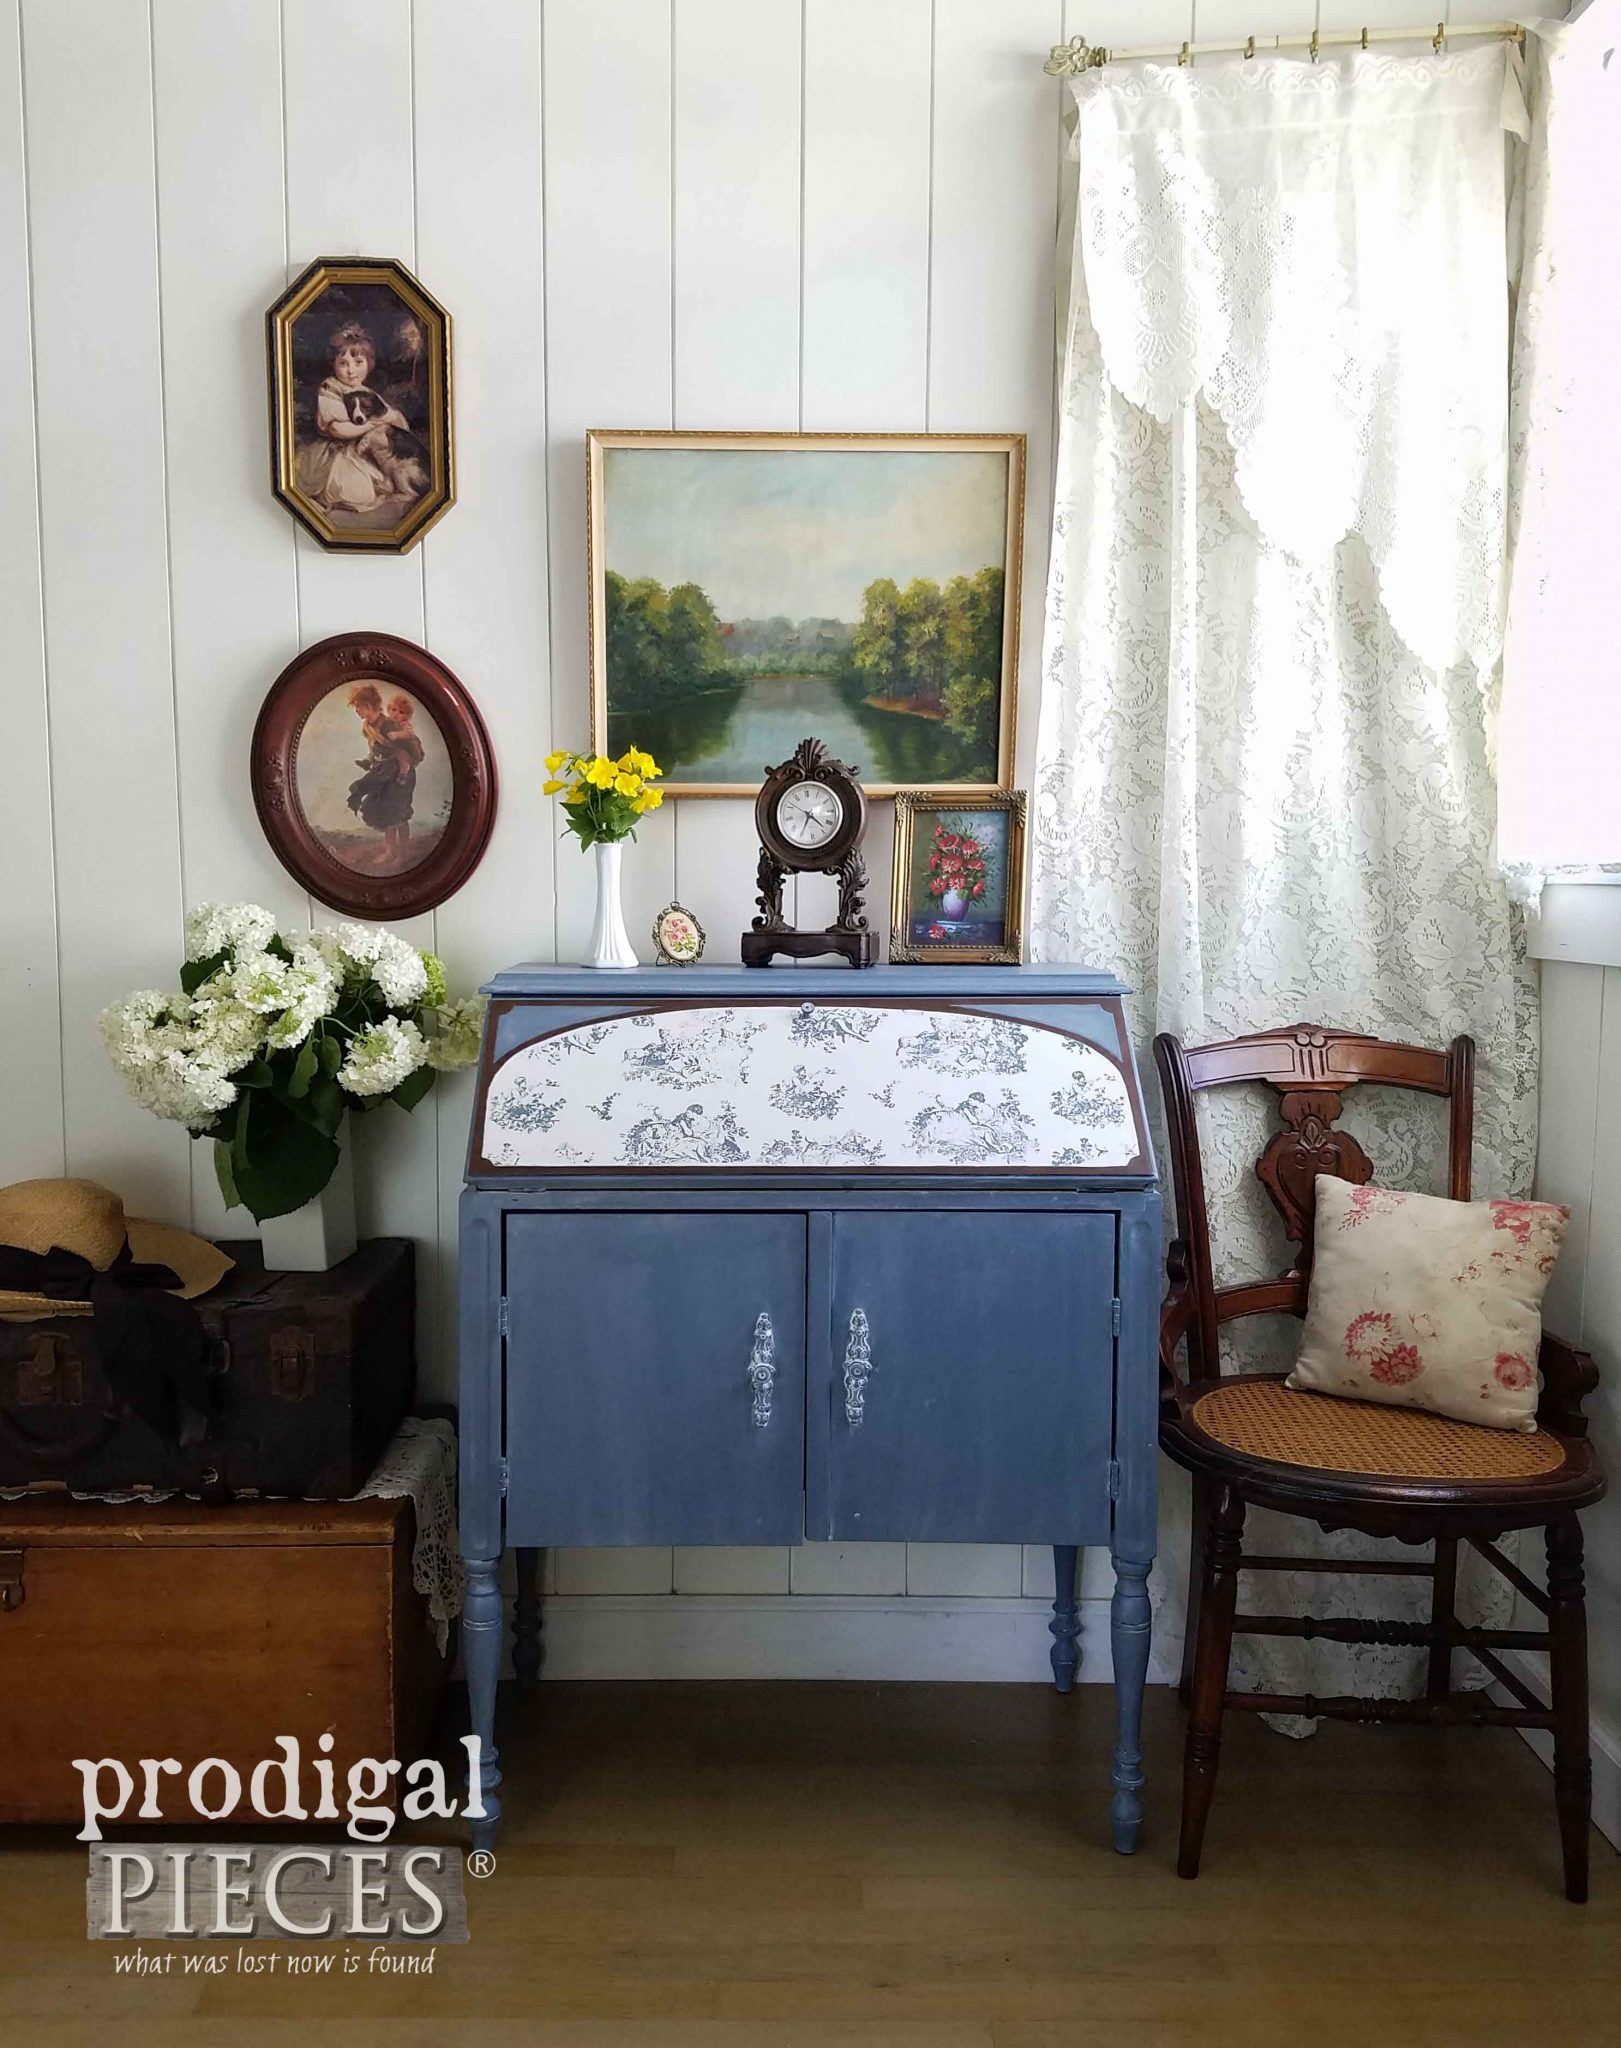 Vintage Secretary Desk Radio made new with Paint and Toile by Prodigal Pieces | prodigalpieces.com